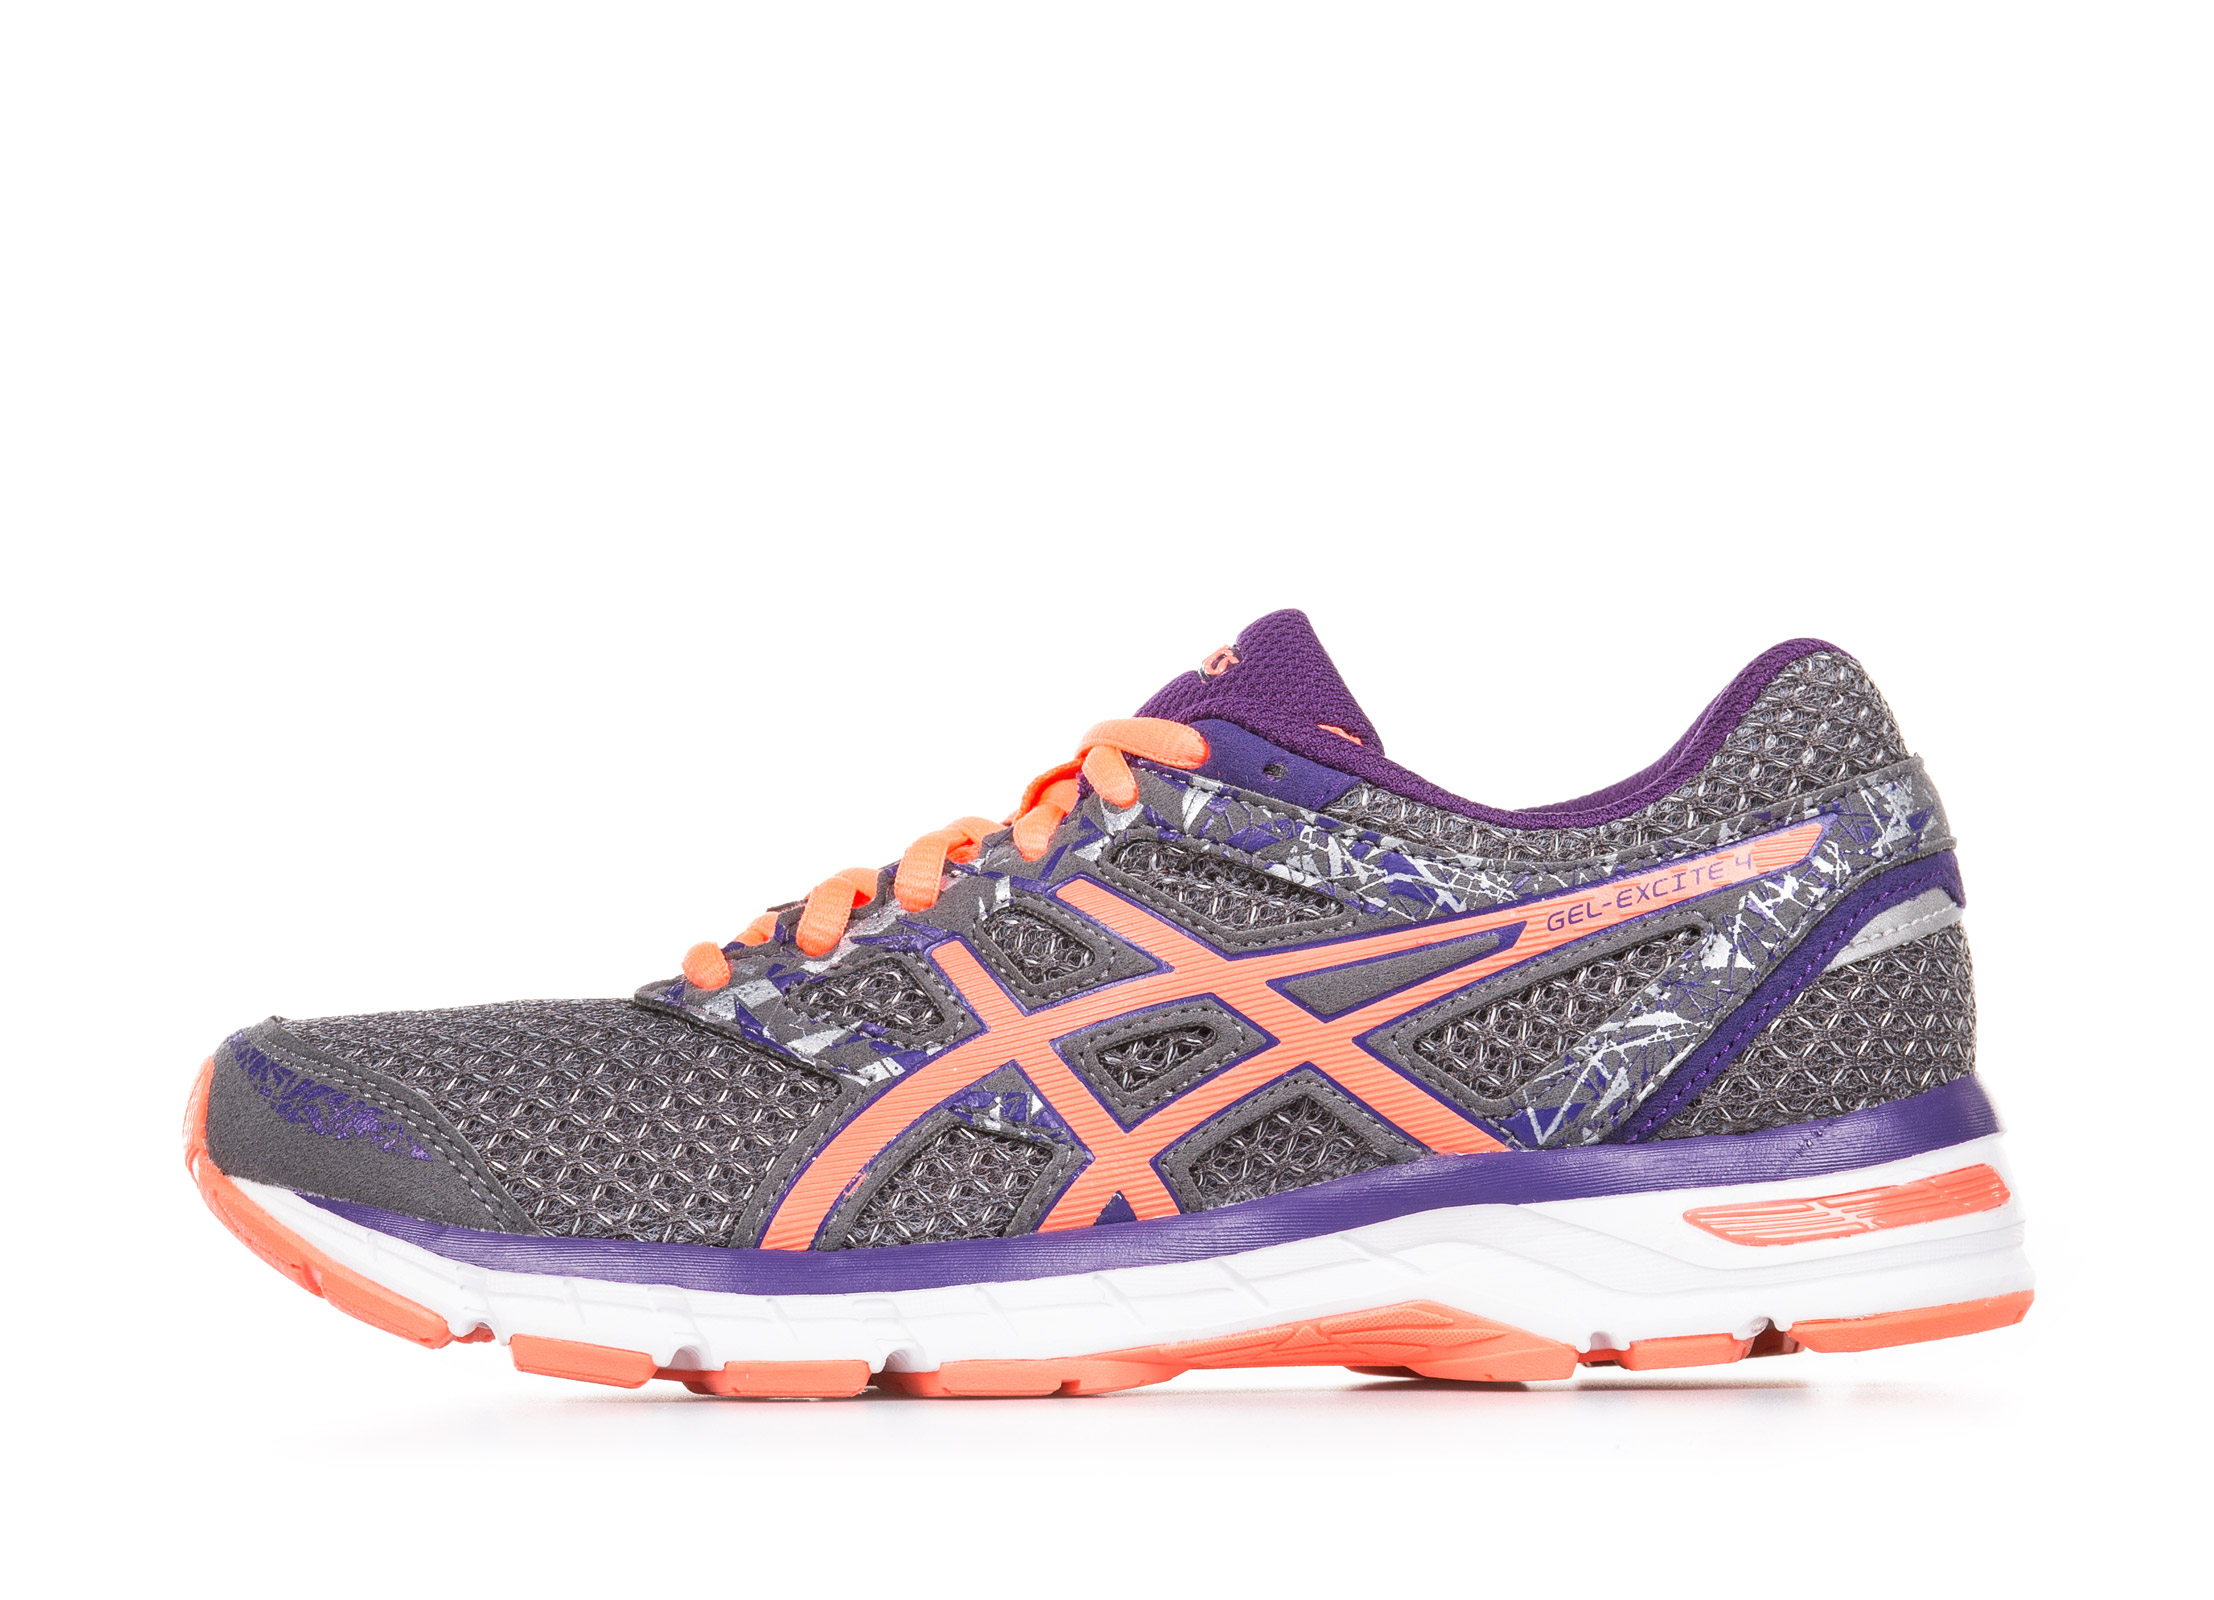 ASICS GEL-EXCITE 4 T6E8N-9606 Ανθρακί